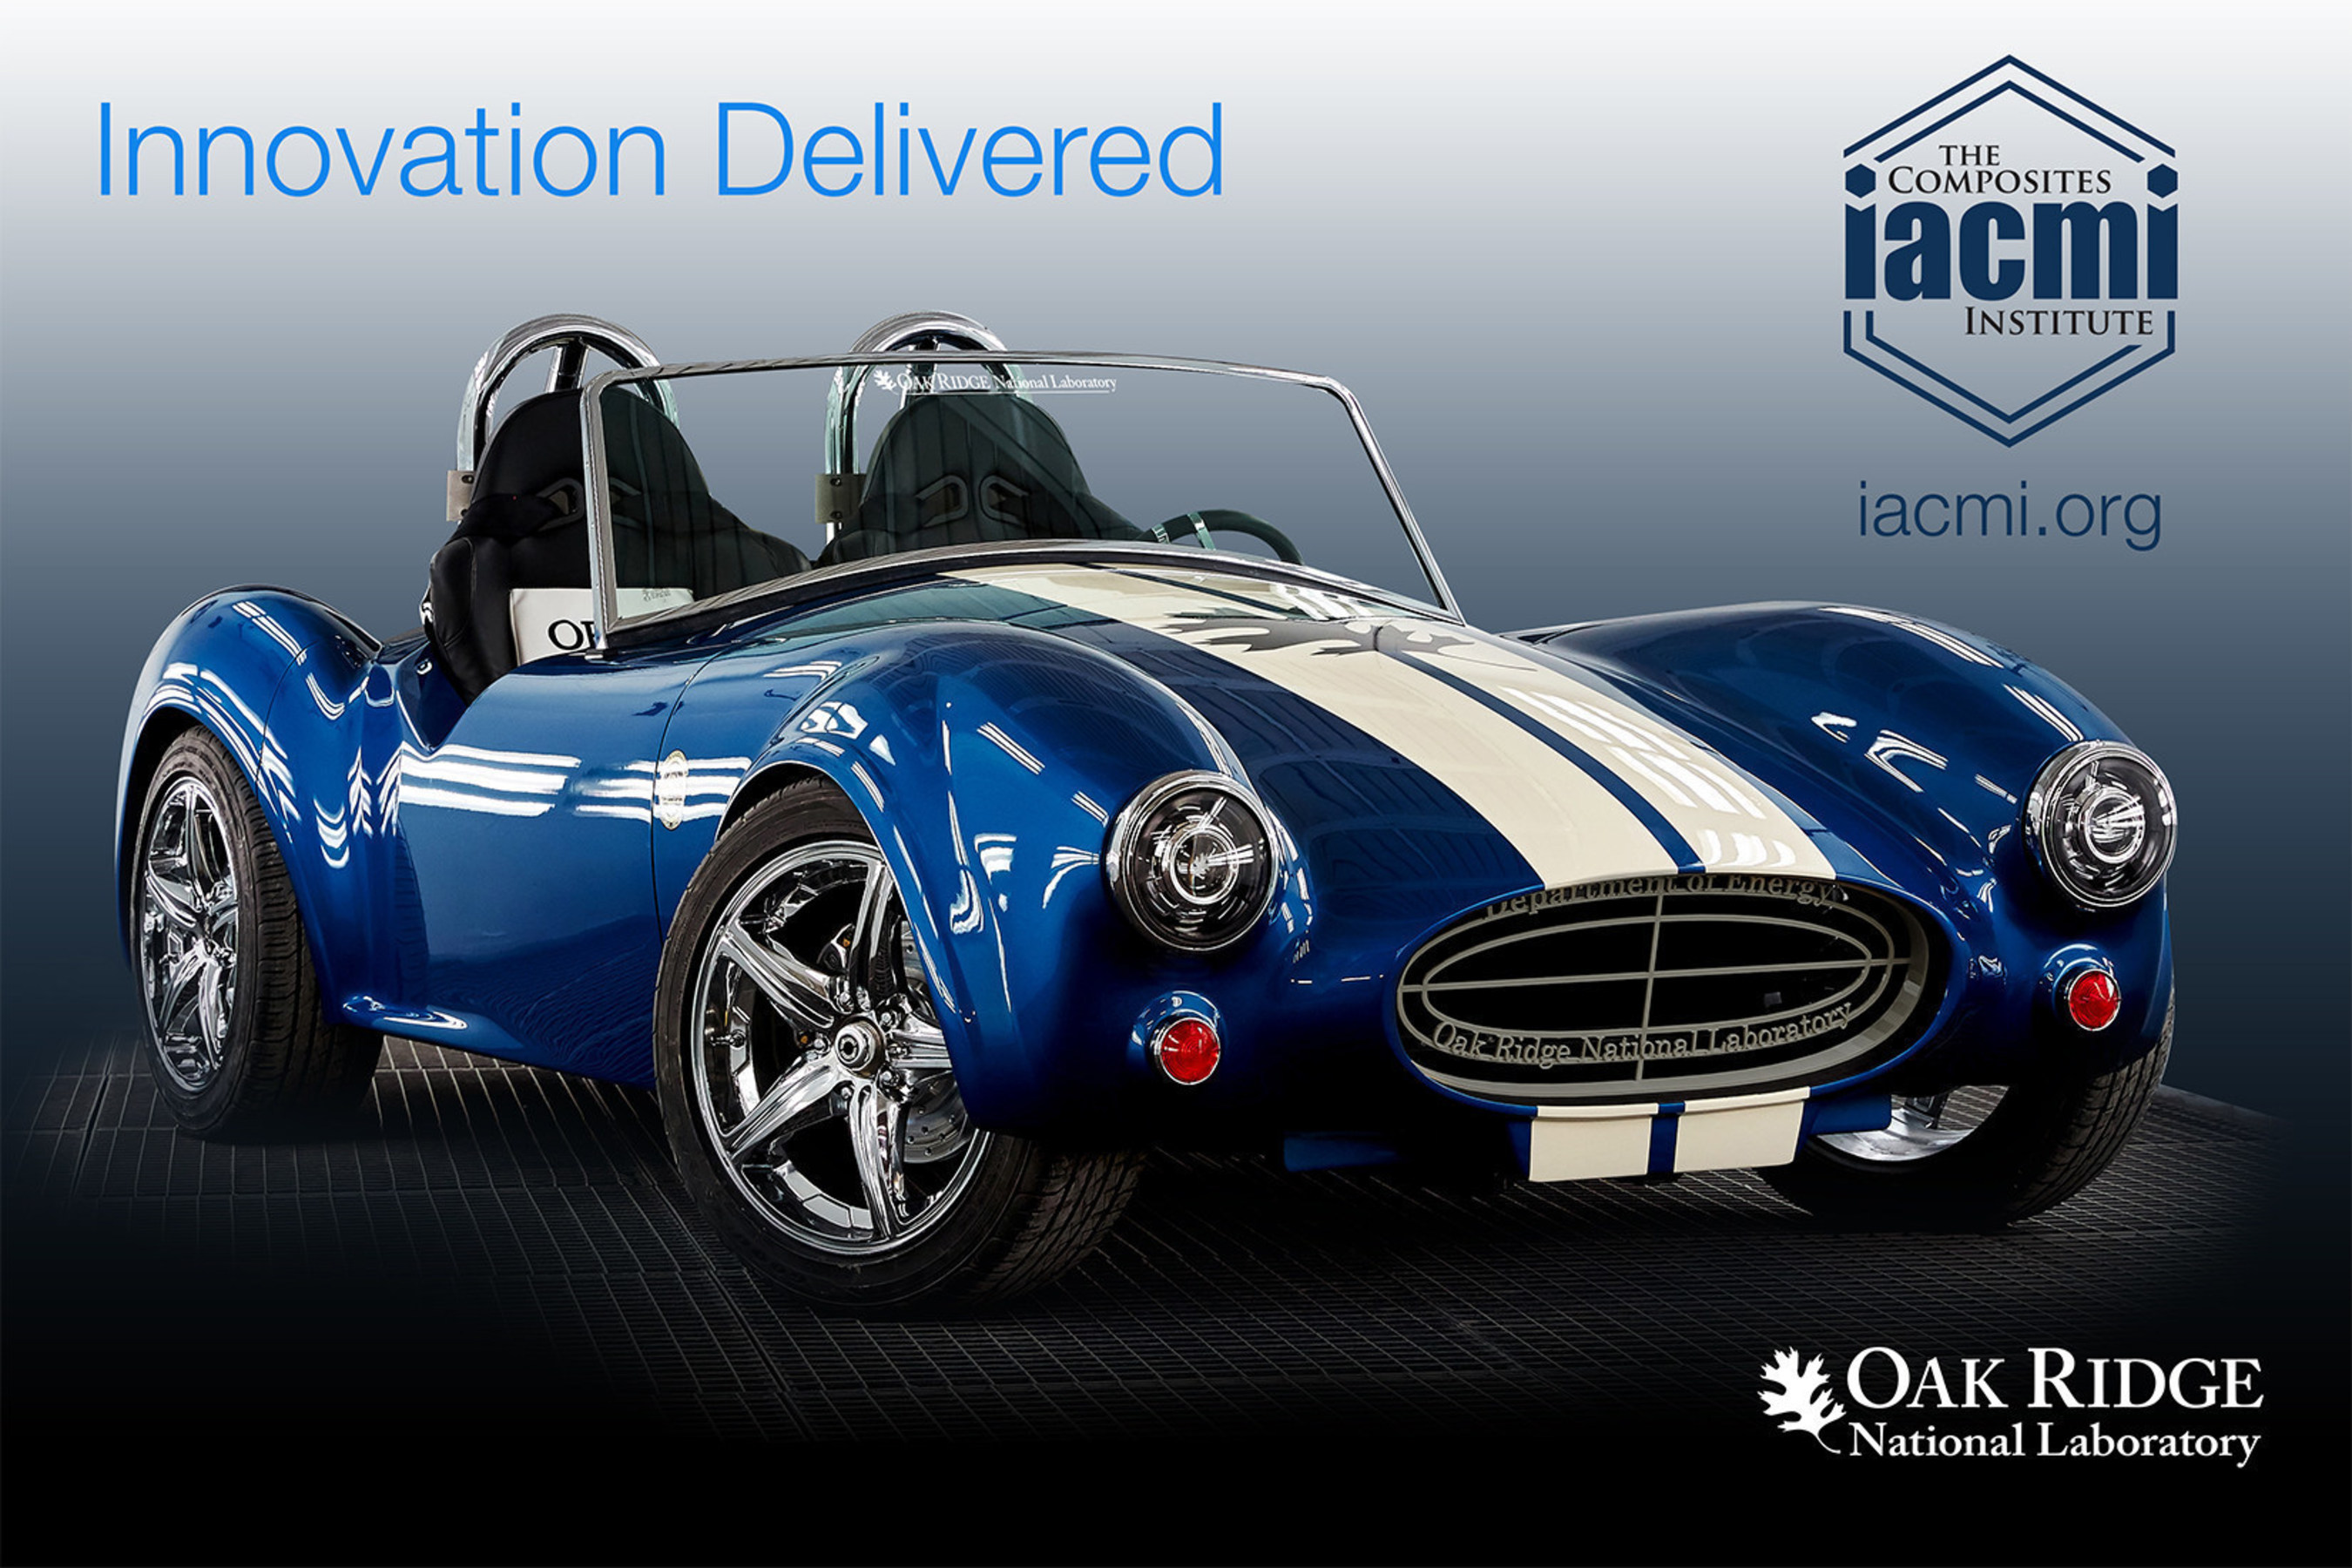 Global award recognizes IACMI-The Composites Institute, Oak Ridge National Laboratory and Partners for development of the innovative technology used to print the replica Shelby Cobra, the first of its kind.